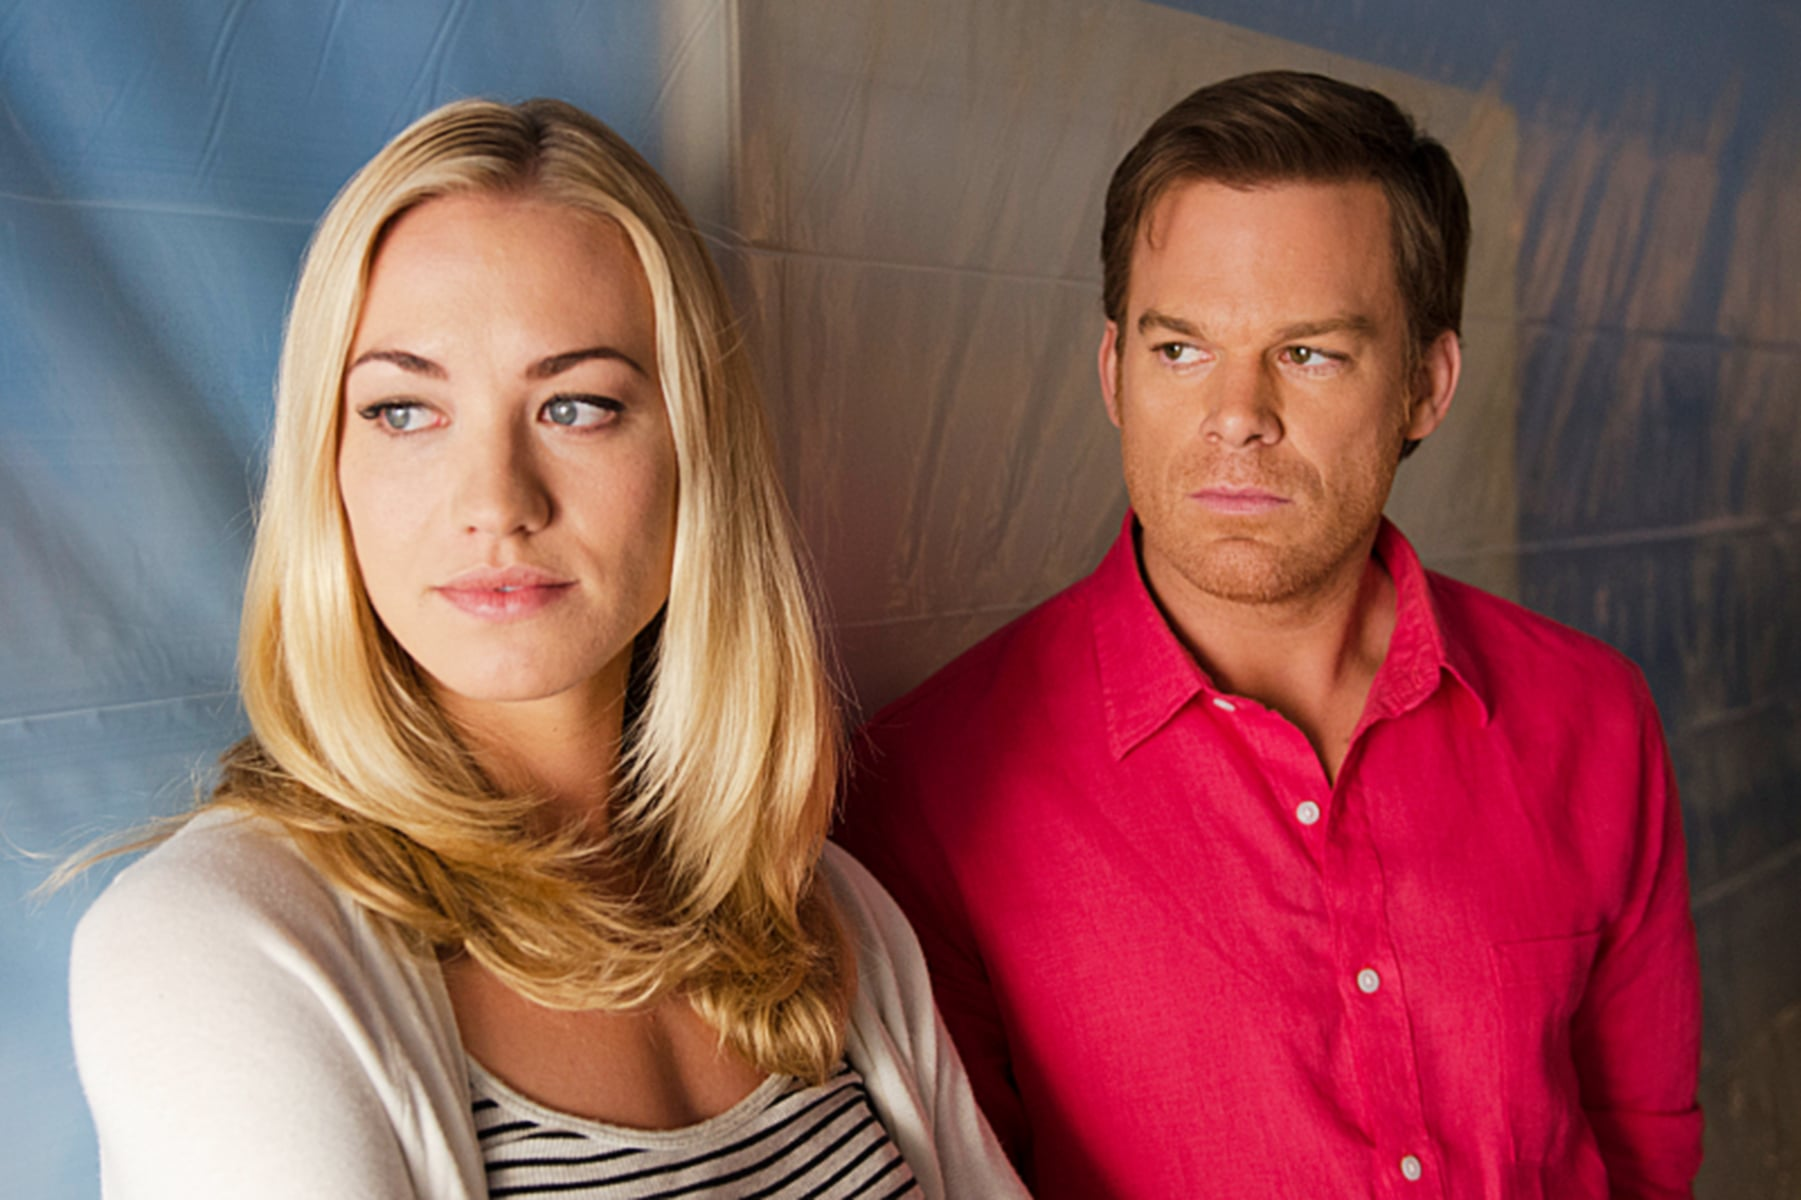 DEXTER, l-r: Yvonne Strahovski, Michael C. Hall in 'Are We There Yet?' (Season 8, Episode 8, aired August 18, 2013). ph: Randy Tepper/Showtime/courtesy Everett Collection